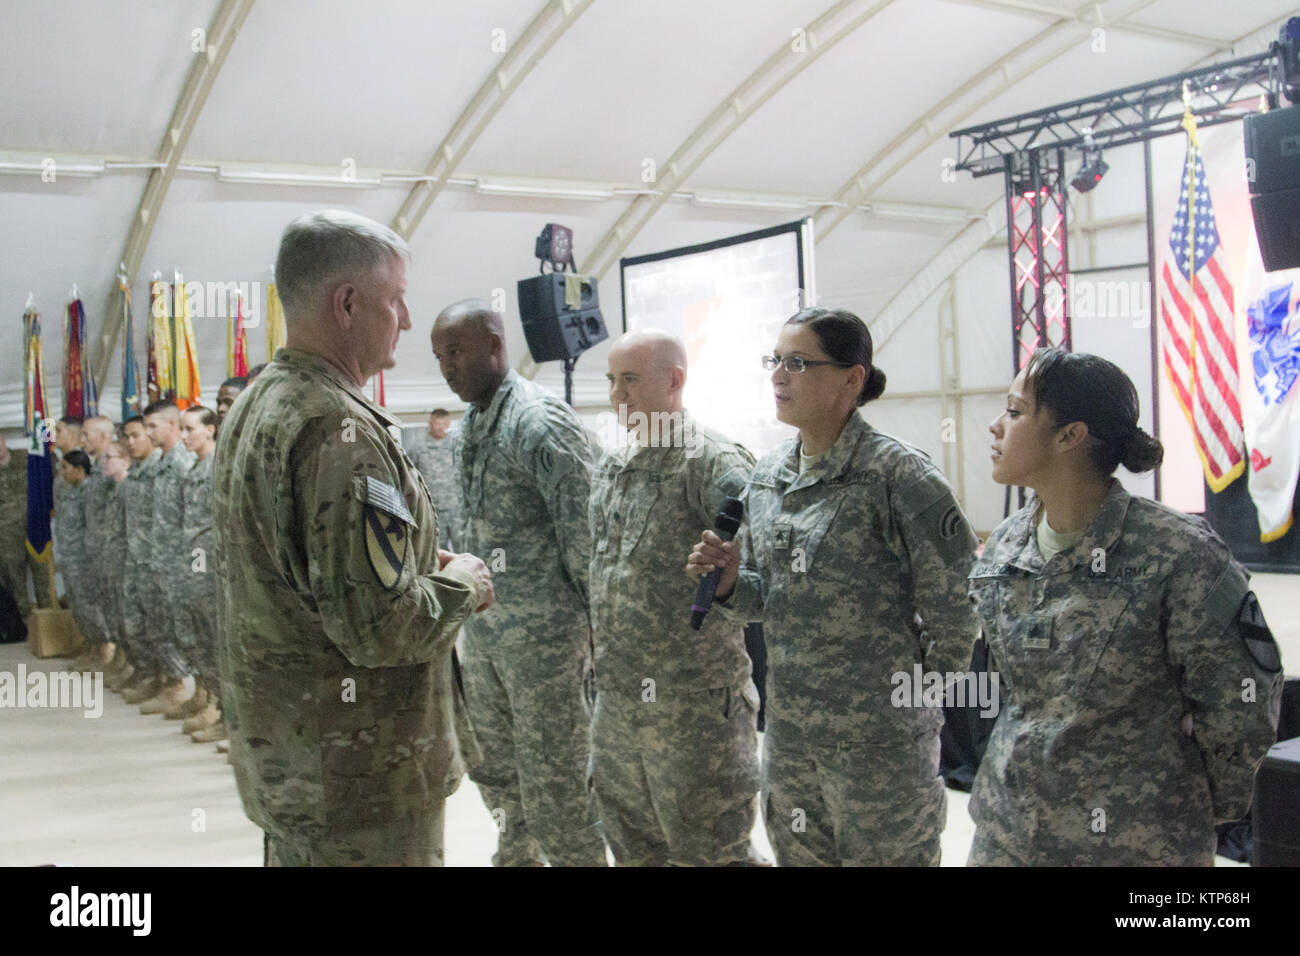 Command Sgt. Major Raymond F. Chandler III, the Sergeant Major of the Army, came to visit soldiers stationed at Stock Photo